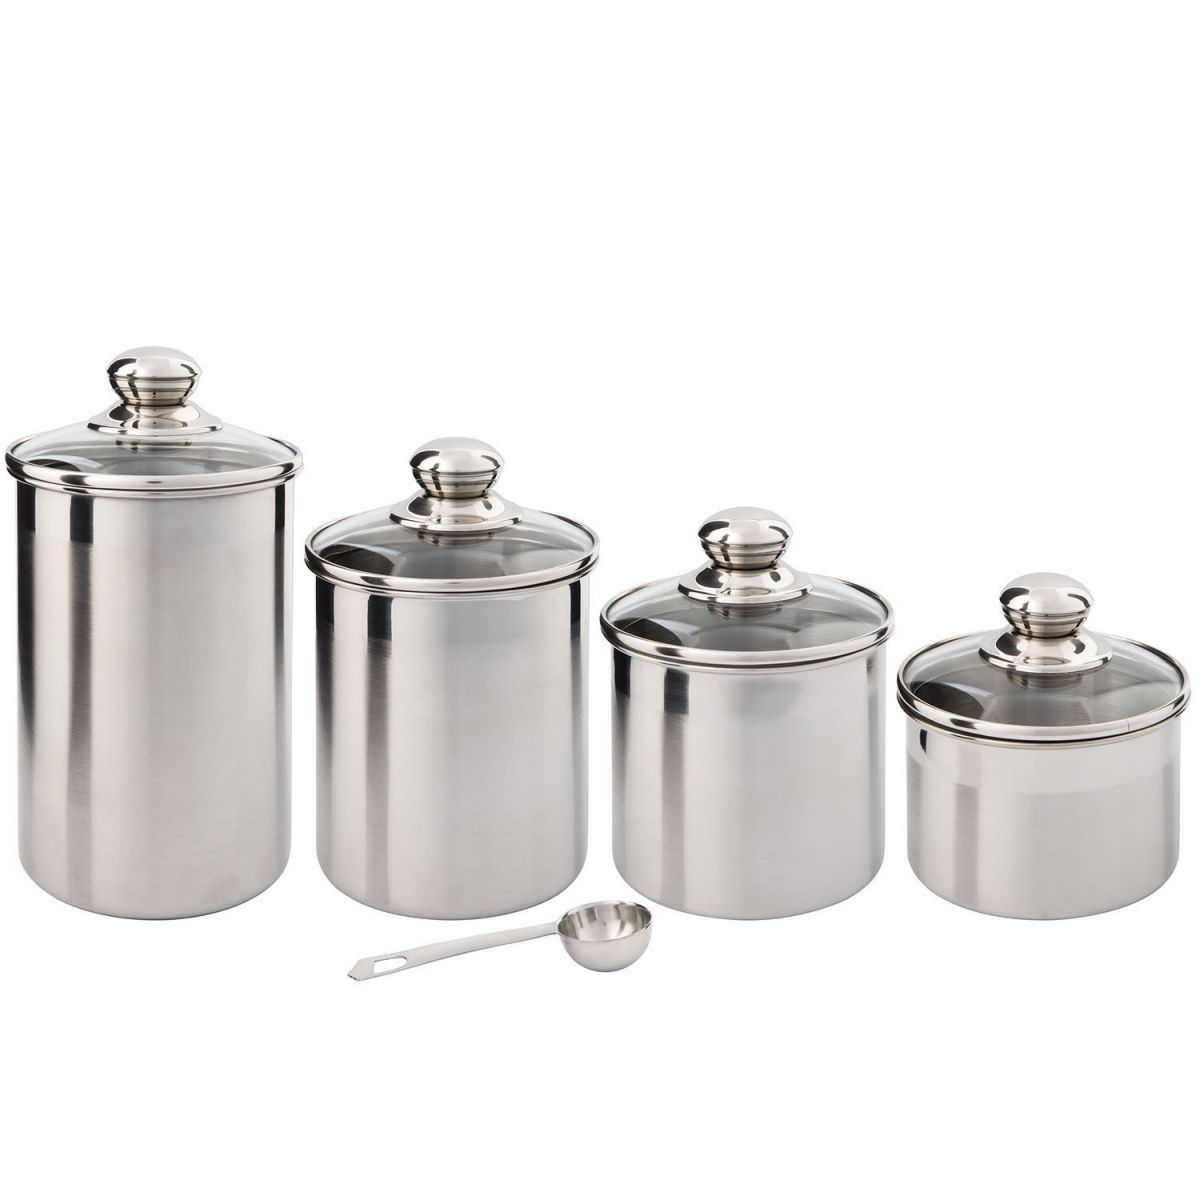 piece small canister set tea coffee sugar kitchen canister storage piece small canister set tea coffee sugar kitchen canister storage canister set stainless steel 5